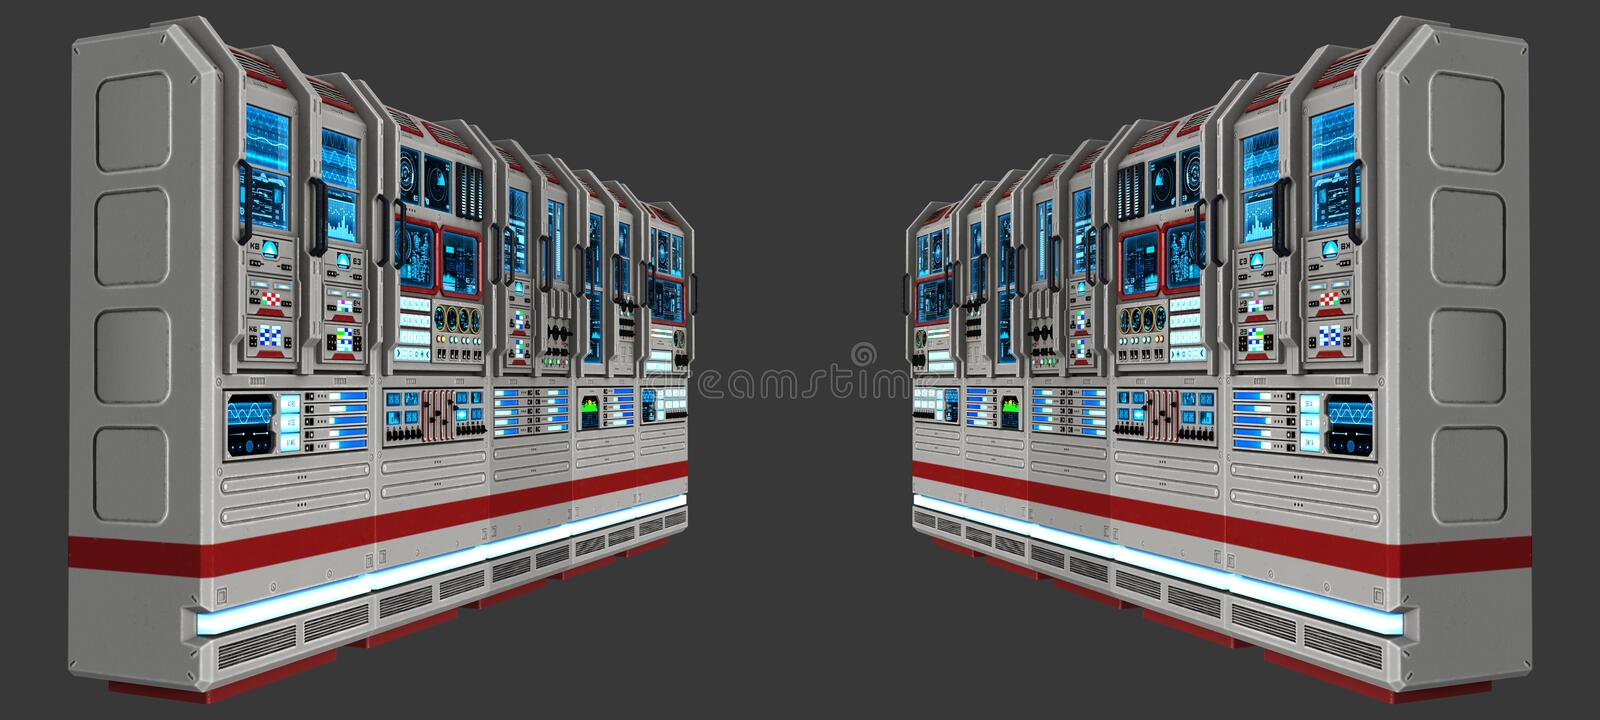 Download Sci Fi Science Fiction Computer Lab Illustration Stock Photo    Illustration Of Controls,